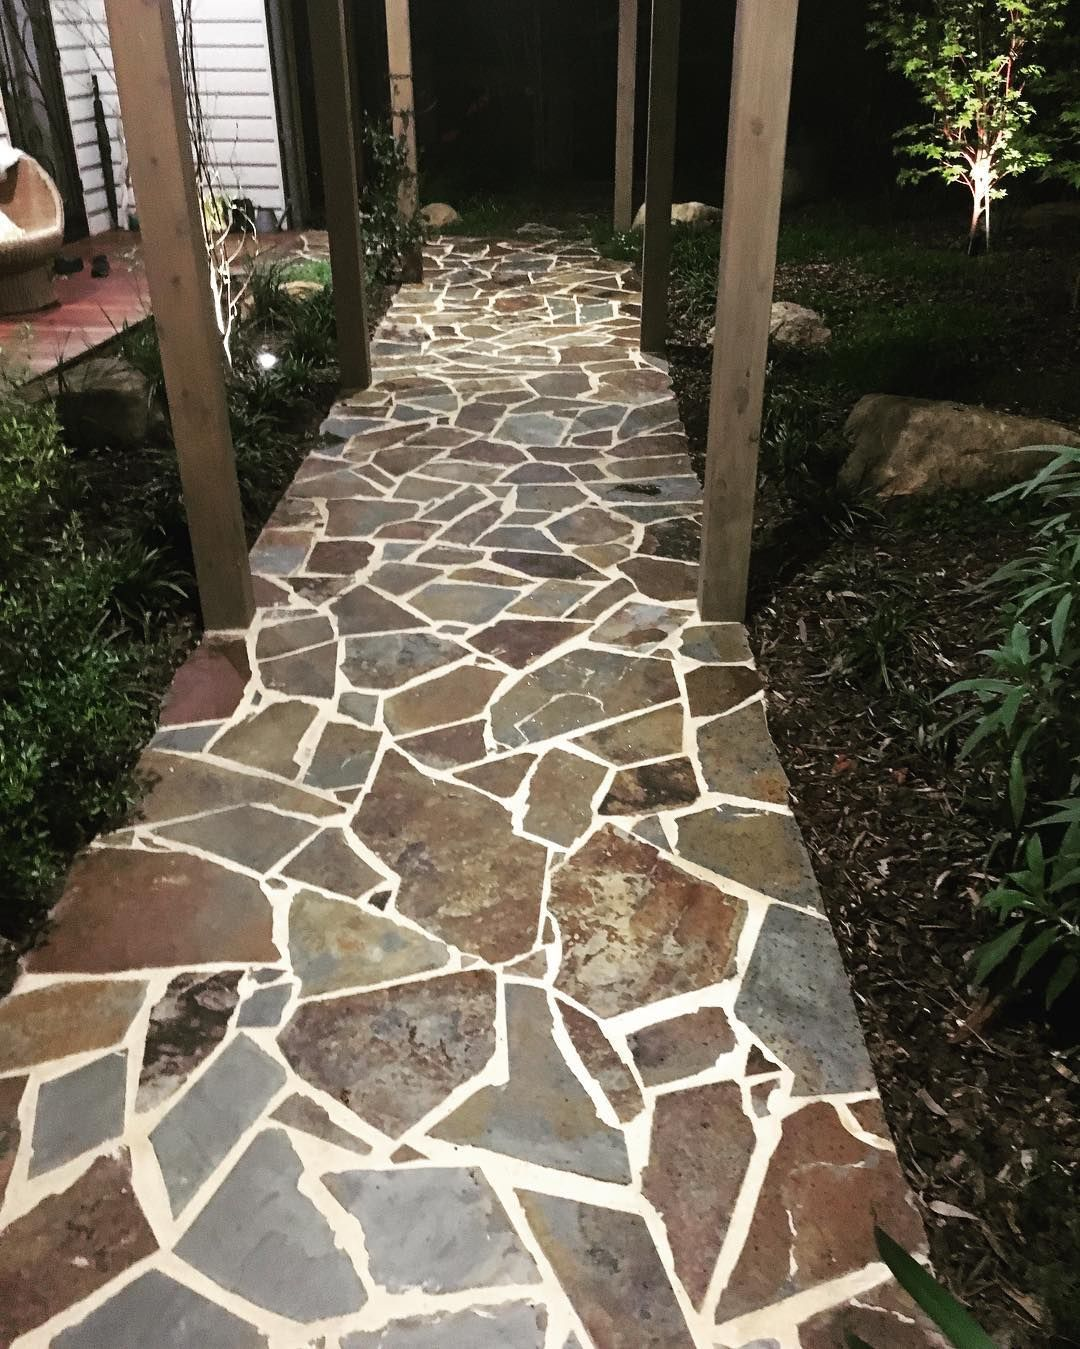 the latest landscaping trend to take over outdoor pavers on inspiring trends front yard landscaping ideas minimal budget id=74678